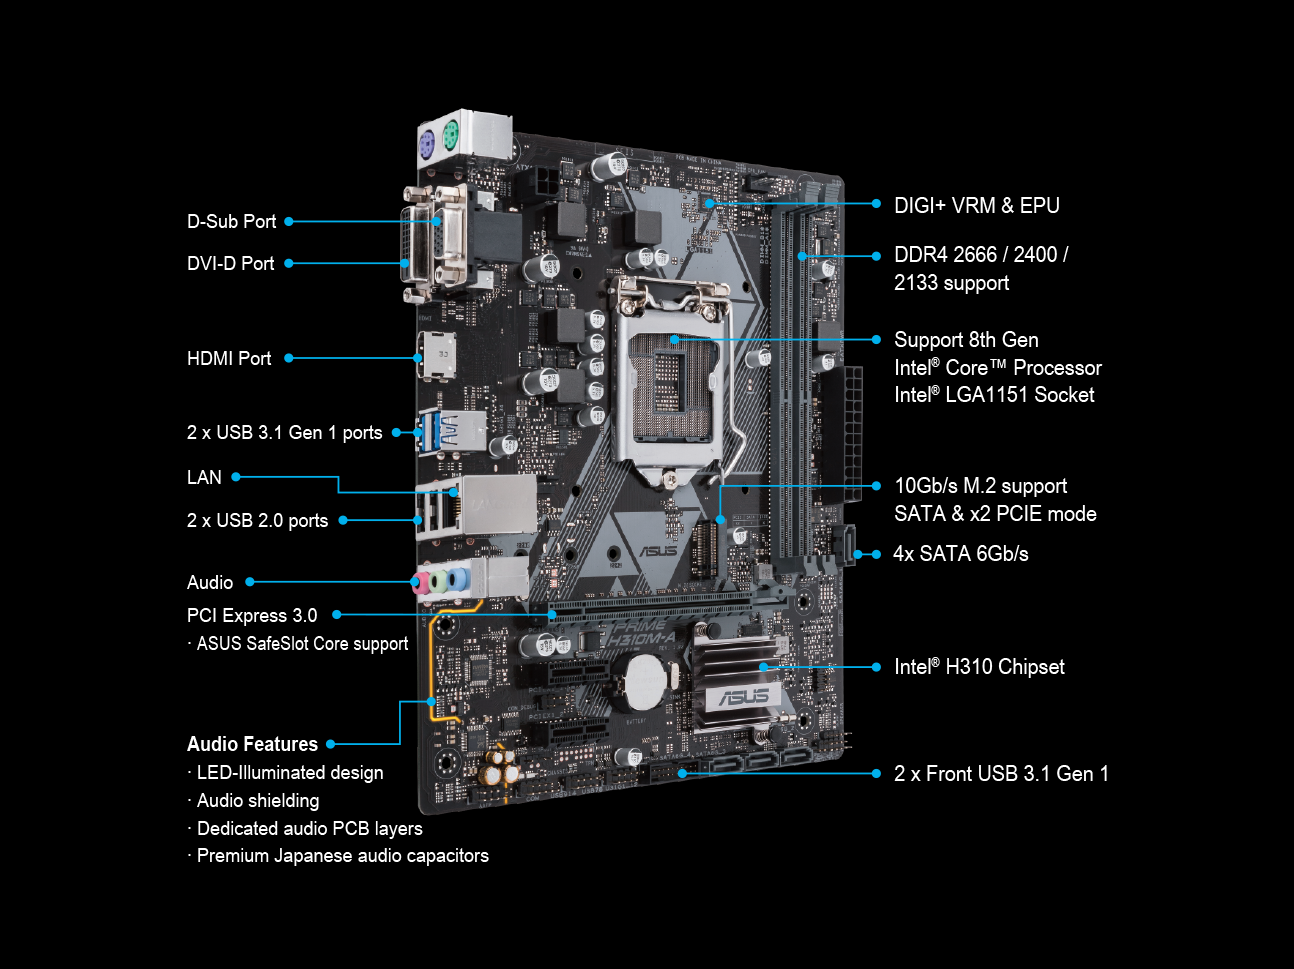 60d2e409aca ASUS Prime 300 Series motherboards provide the solid foundation needed for  your first build, plus flexibility to grow with your ambitions.